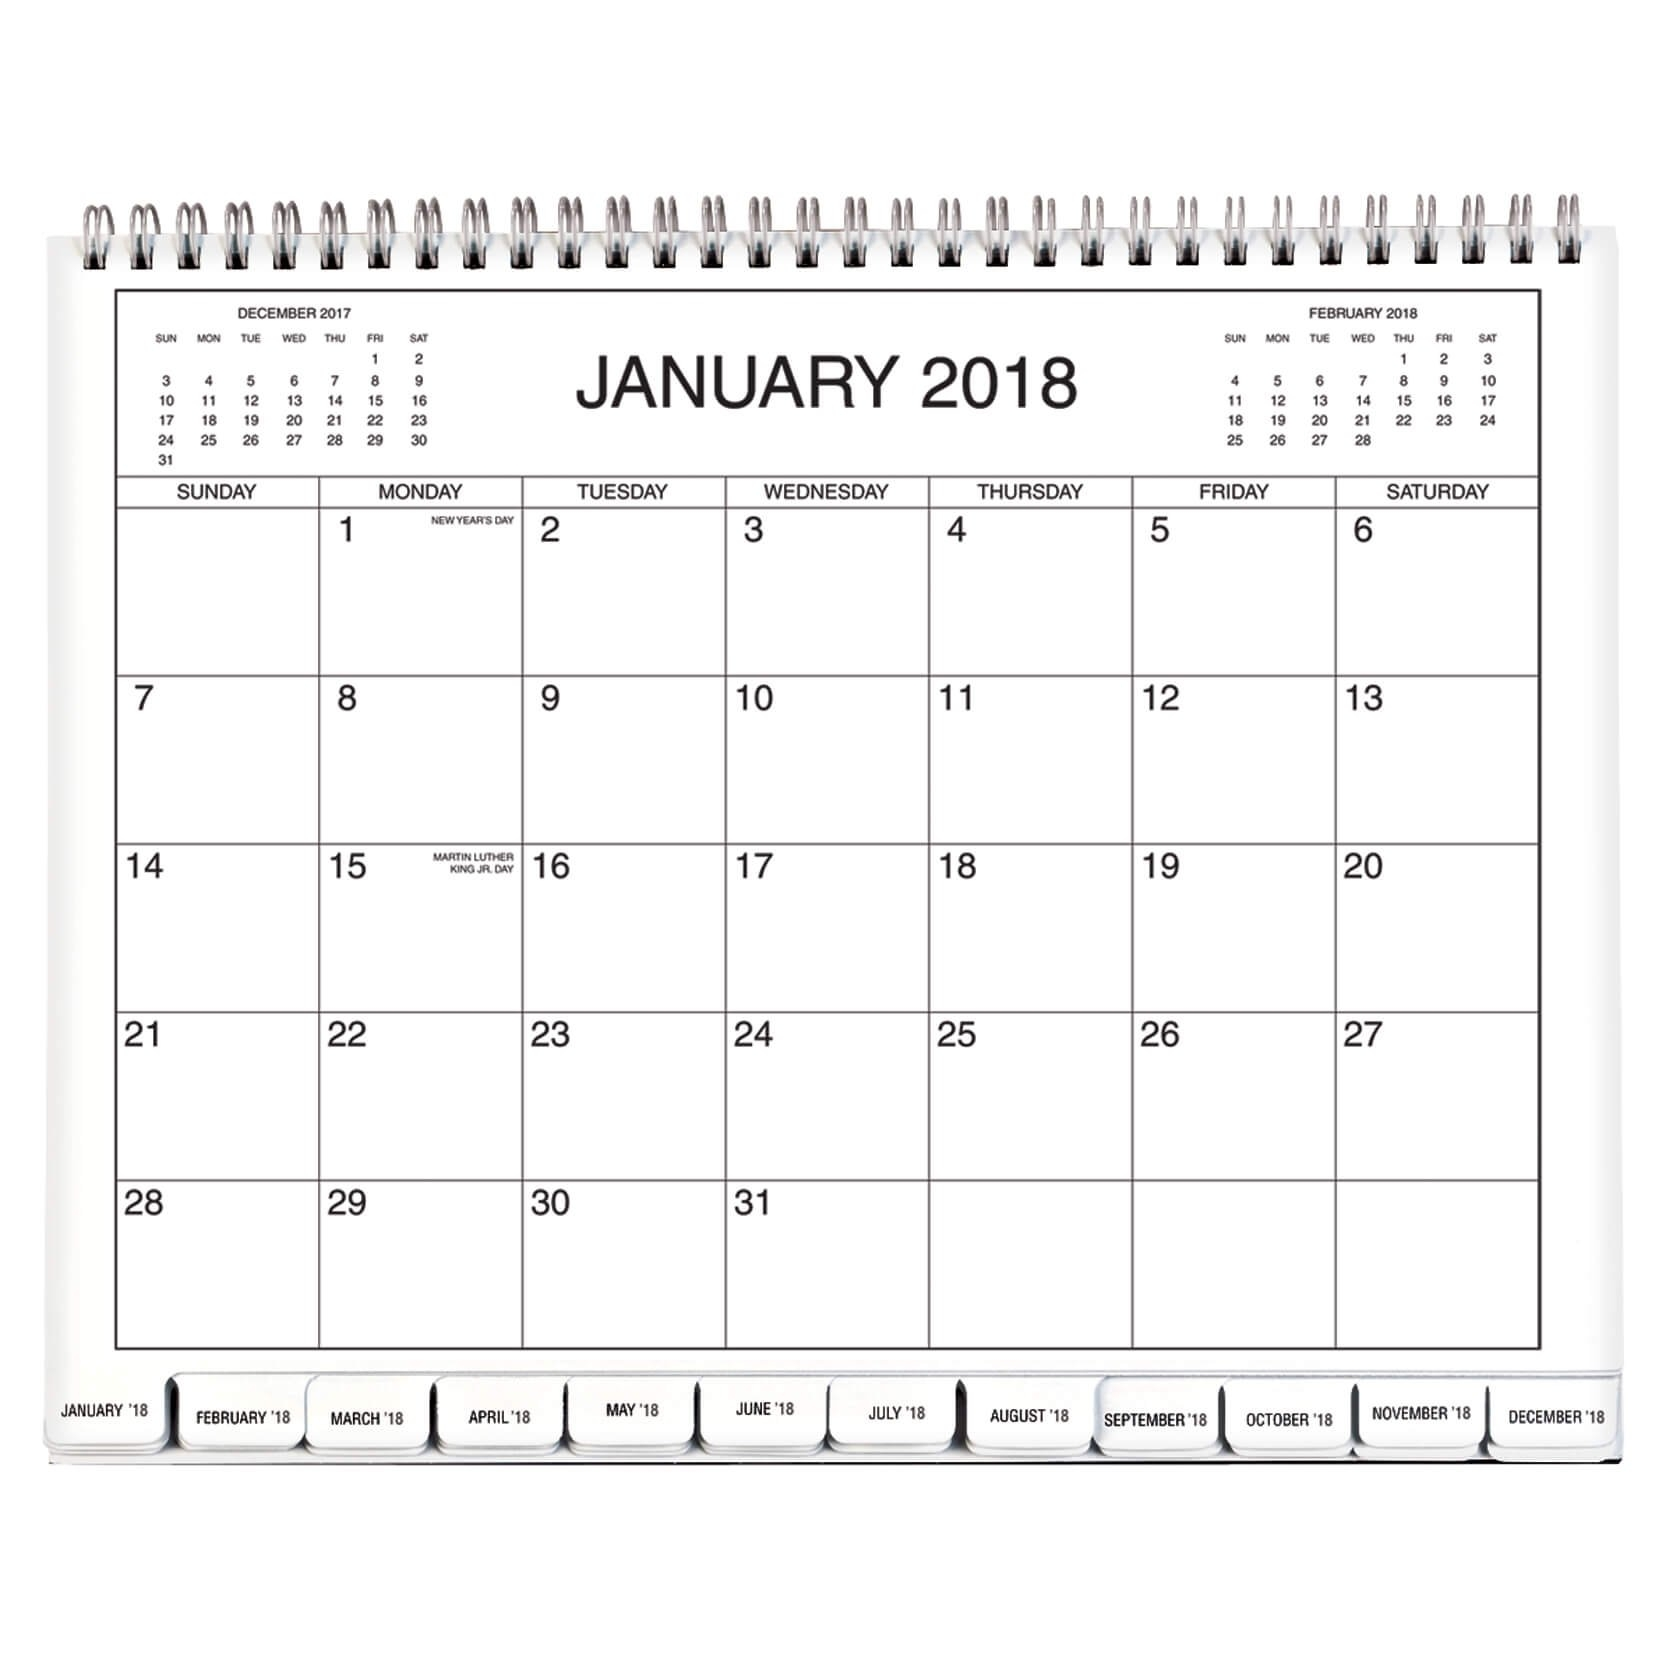 Calendars & Stationery Sale - Walter Drake Calendar 2019 On Sale